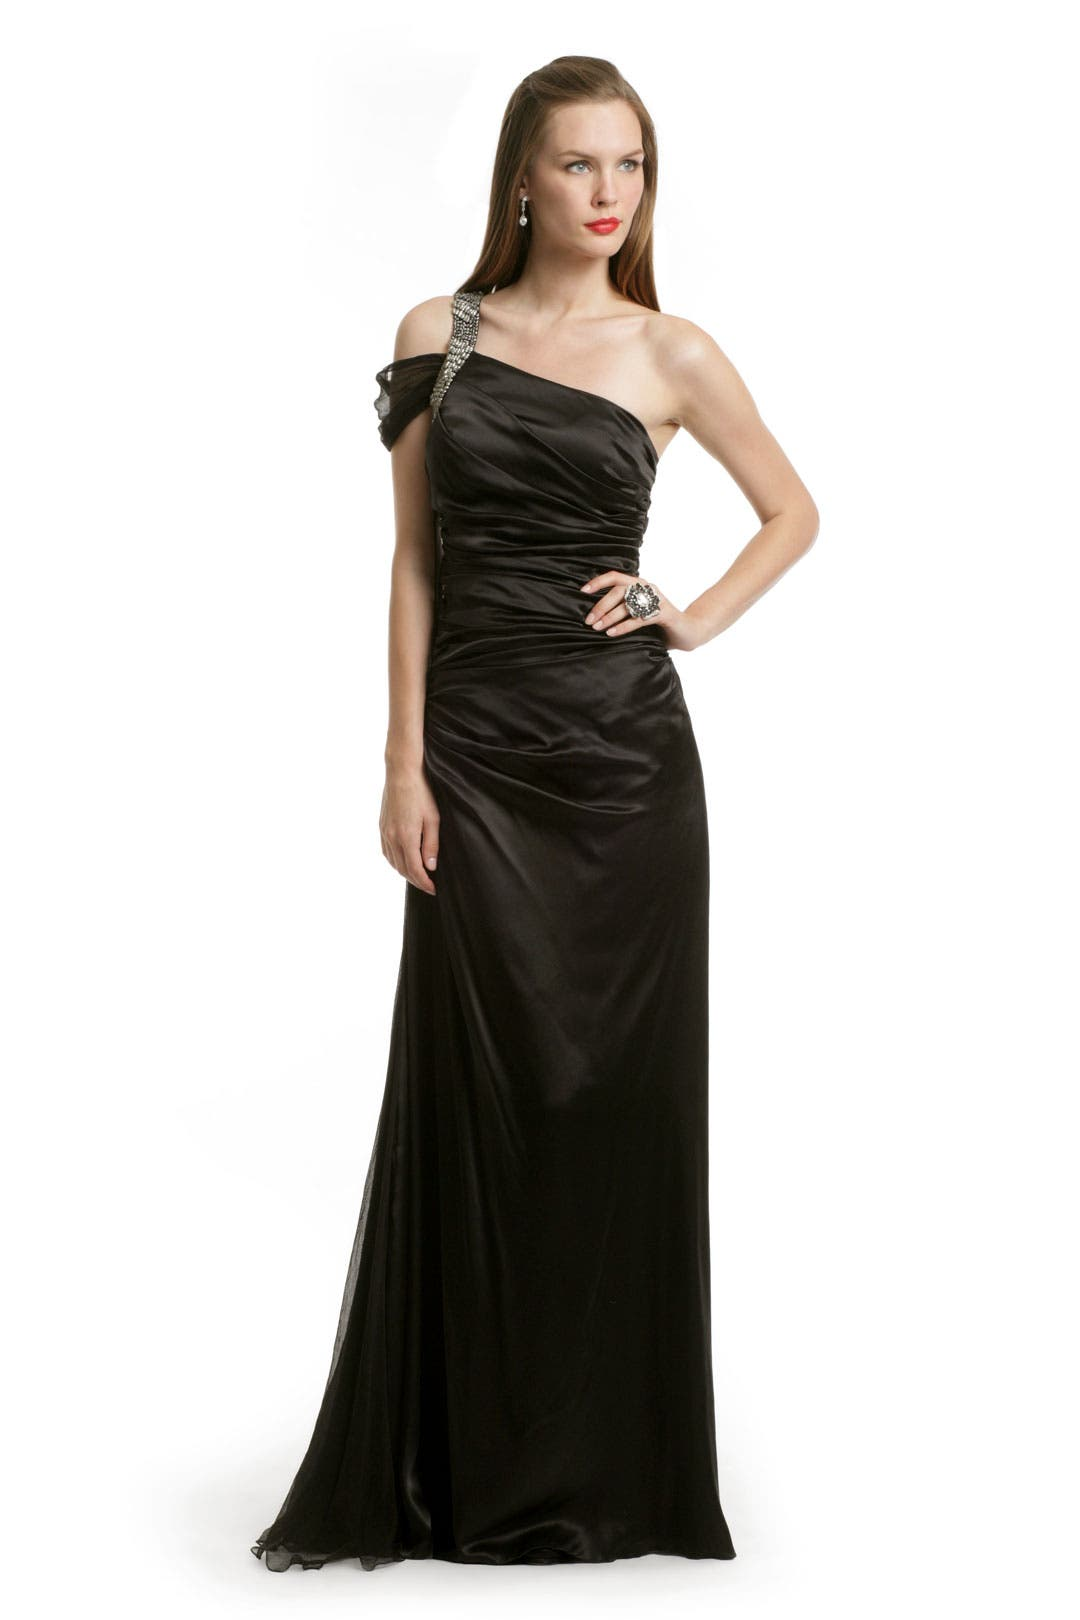 Seductive Charm Gown by Carlos Miele